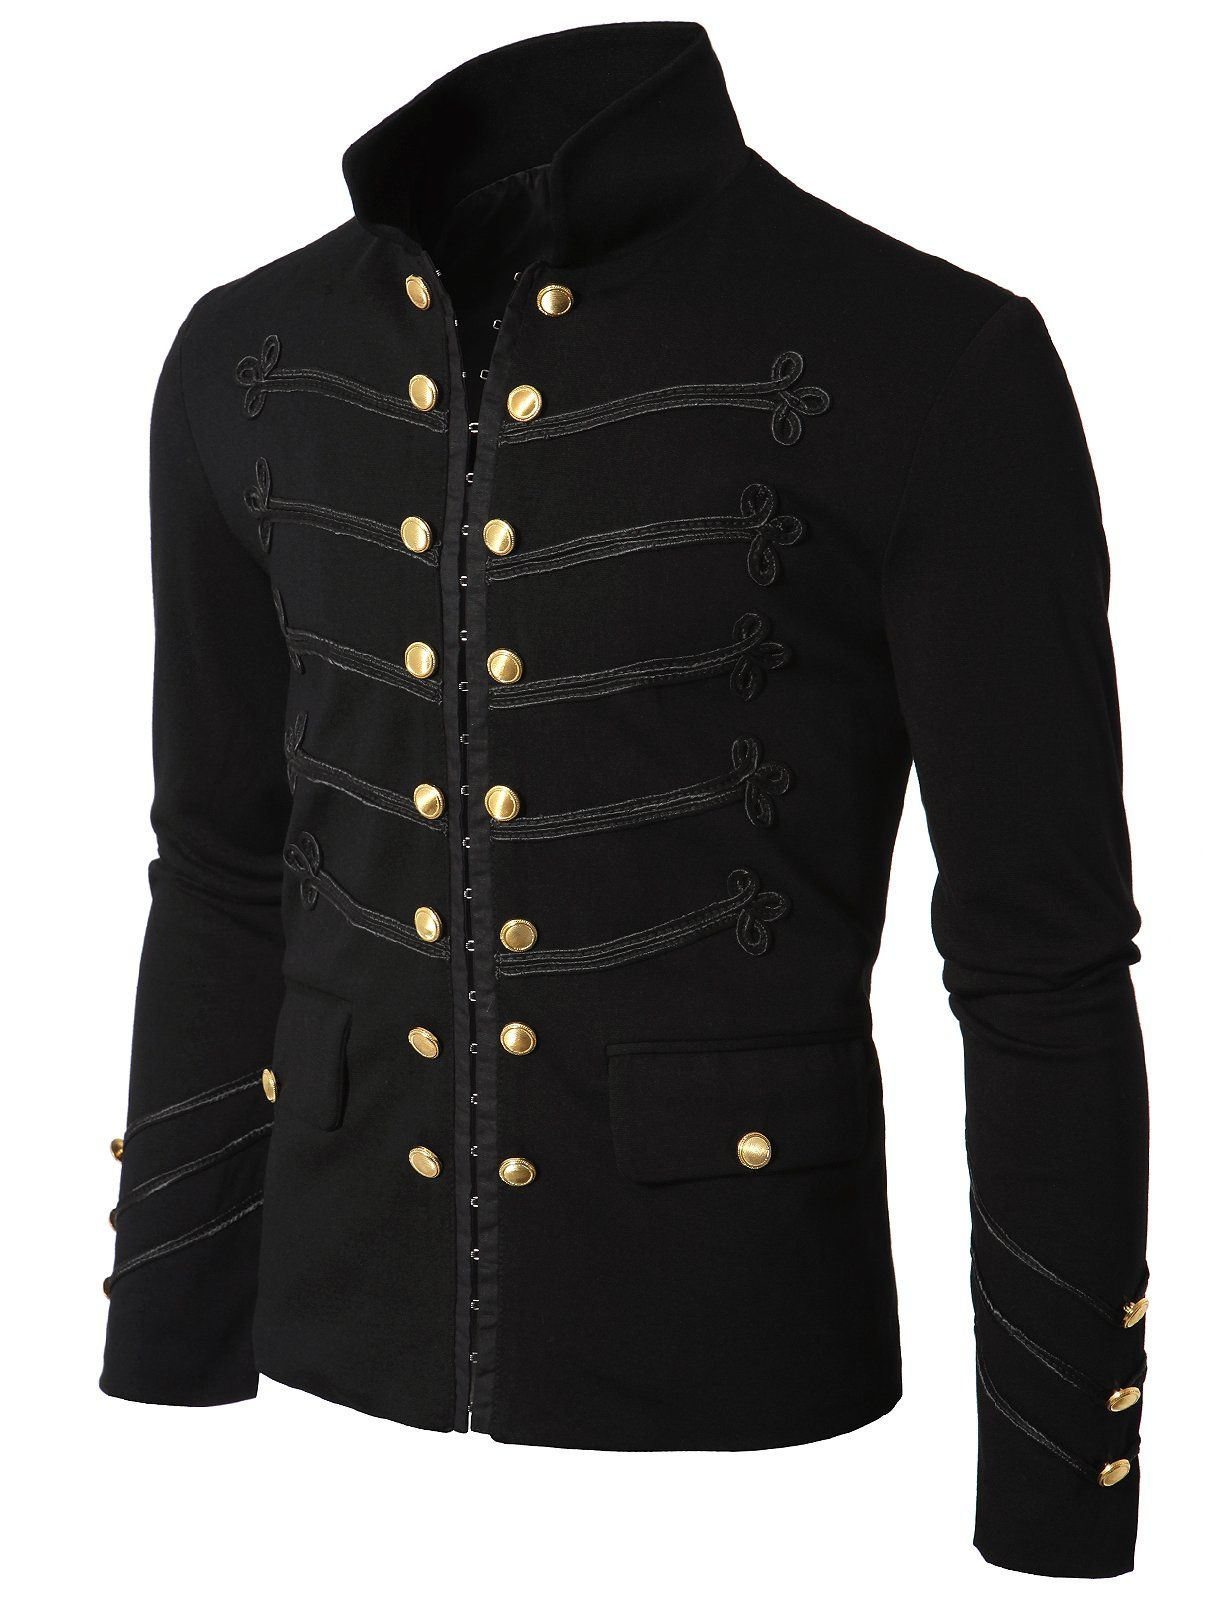 b126b1a6d AHKIRA Mens Jacket with Button Detail at Amazon Men's Clothing store:  Gothic Jacket